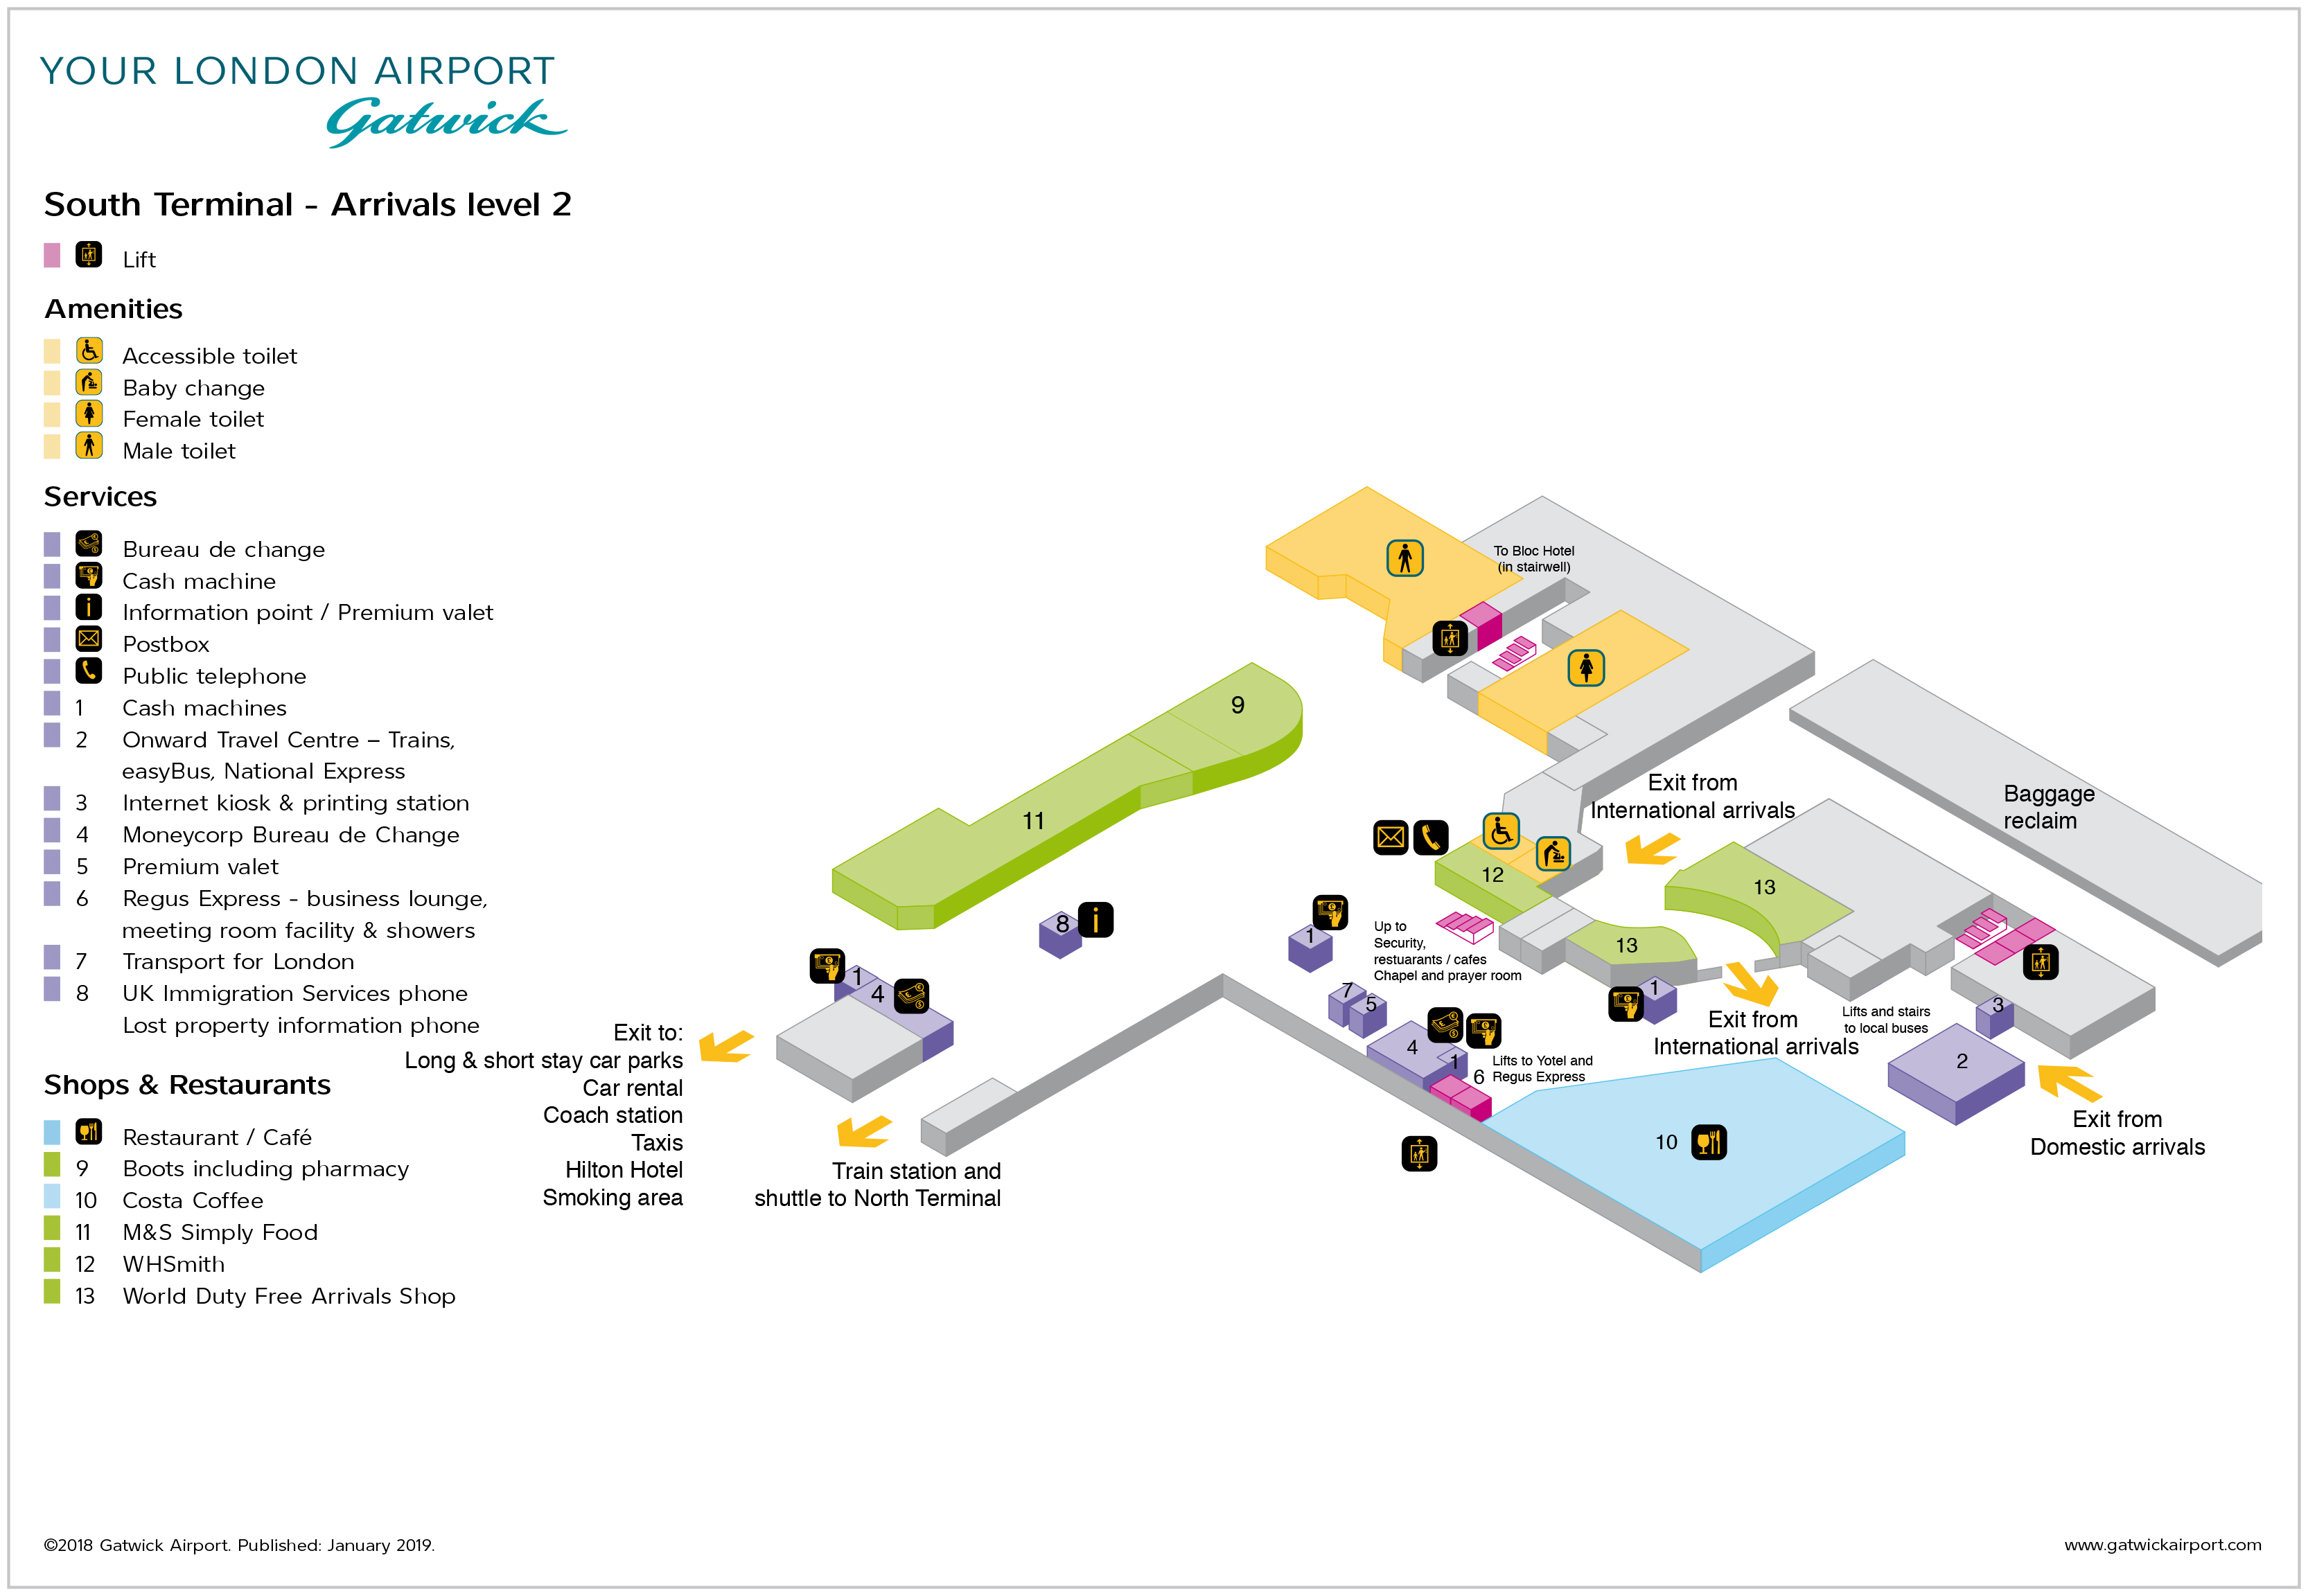 Gatwick Airport Map (LGW) - Printable Terminal Maps, Shops ... on charles de gaulle international airport, los angeles international airport, copenhagen airport, edi airport map, afonso pena international airport map, dublin airport, lgw airport map, orlando international airport, united airlines seatac airport map, amsterdam schiphol airport, chennai international airport map, noi bai international airport map, thomas cook airlines, london stansted airport, monarch airlines, edinburgh airport, providenciales international airport map, john f. kennedy international airport, syracuse hancock international airport map, heathrow airport map, frankfurt airport map, hong kong international airport, baghdad international airport map, dubai international airport, newark liberty international airport, london heathrow airport, airport taxi map, london city airport, frankfurt international airport, dublin airport map, durham airport map, chhatrapati shivaji international airport map, san francisco airport map, reading airport map, aalborg airport map, london map, malta international airport map,